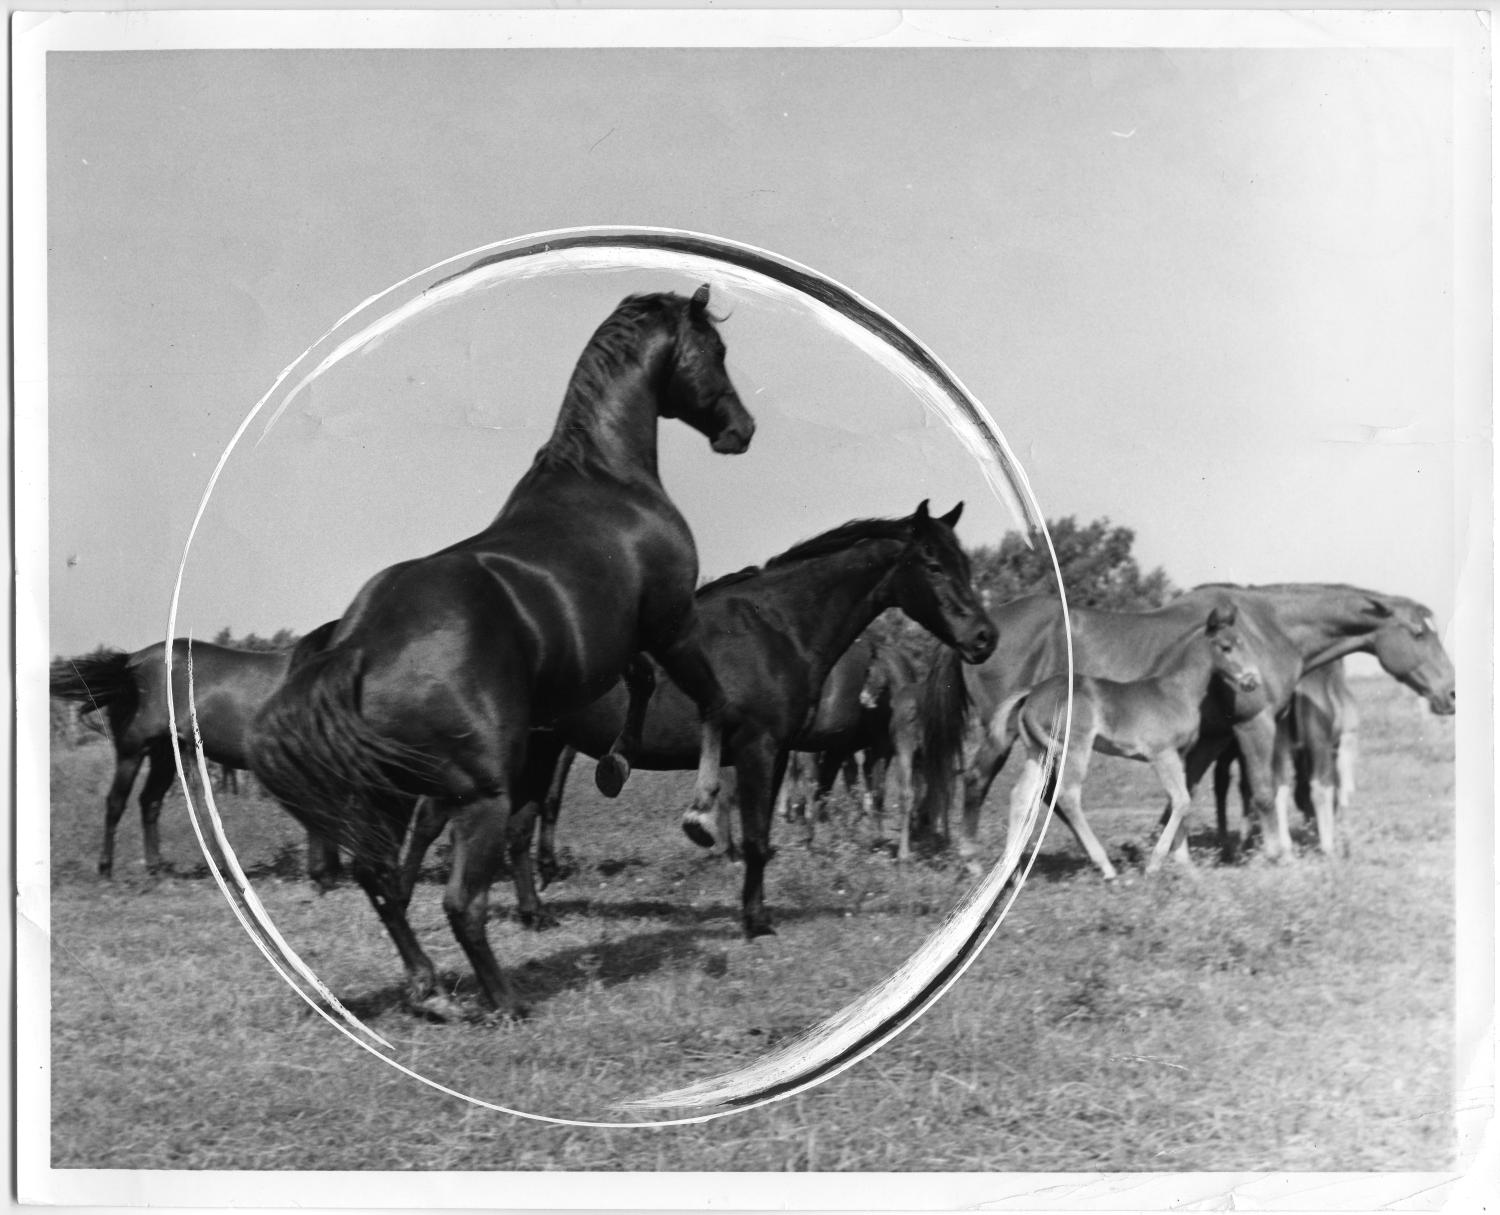 King Ranch Texas >> Horses at King Ranch - Side 1 of 1 - The Portal to Texas History